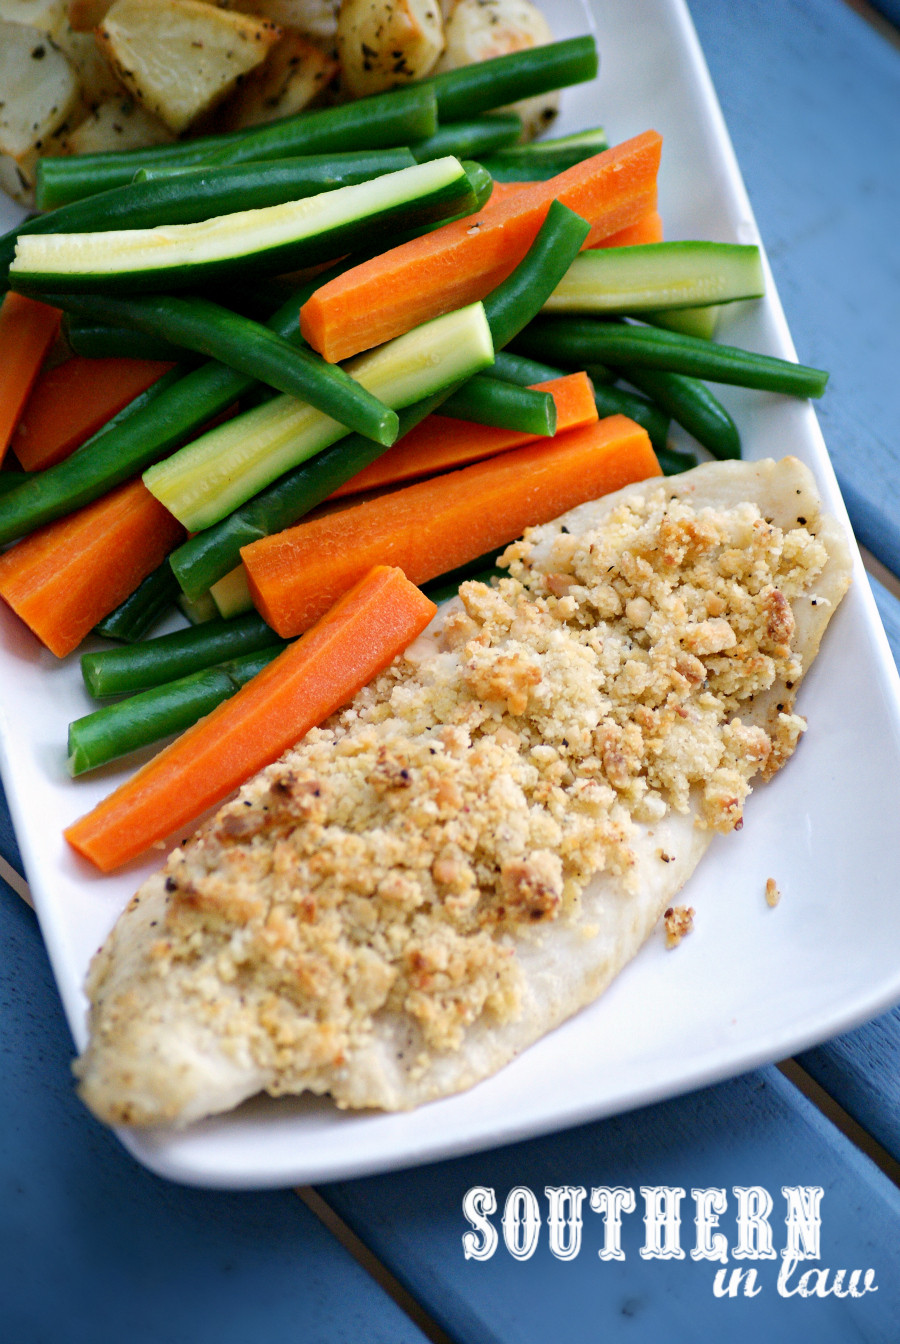 Healthy Low Fat Dinner Recipes  Southern In Law Recipe Healthy Macadamia Crusted Baked Fish